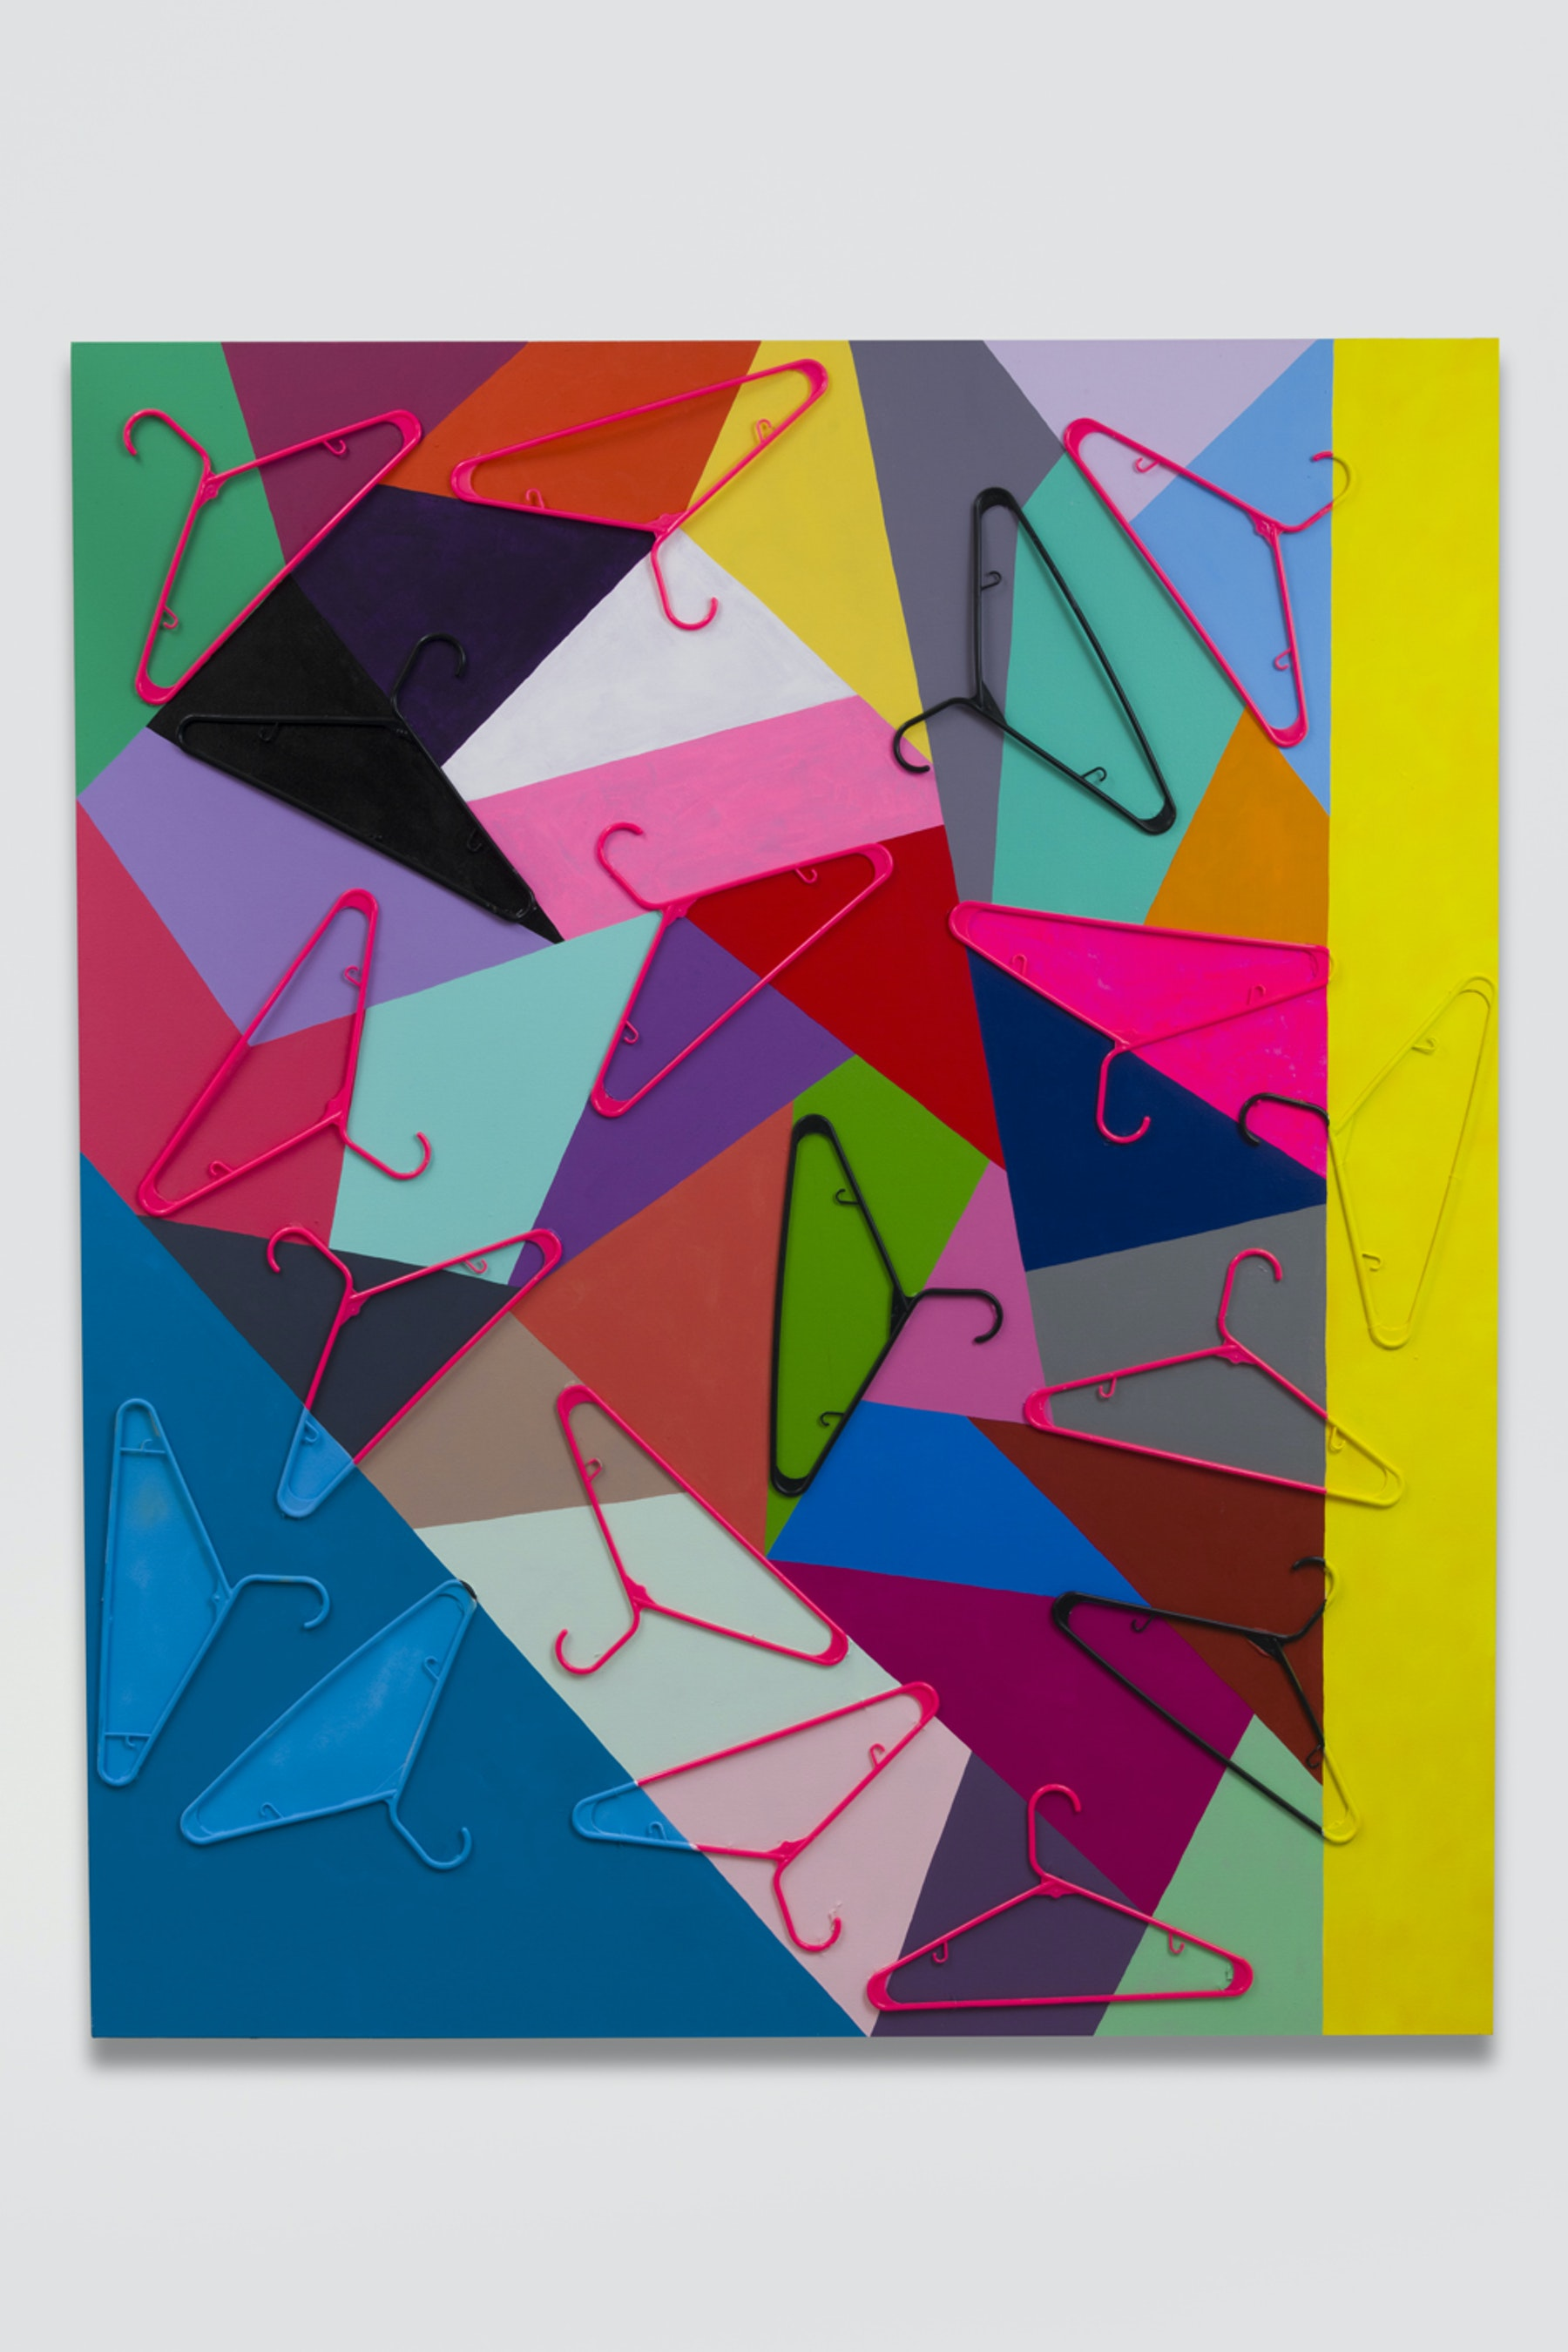 "Sarah Cain ""keep it safe and legal,"" 2018 Acrylic, gouache, and plastic hangers on canvas 72 x 60"" [HxW] (182.88 x 152.4 cm) Inventory #CAS109 Courtesy of the artist and Vielmetter Los Angeles"